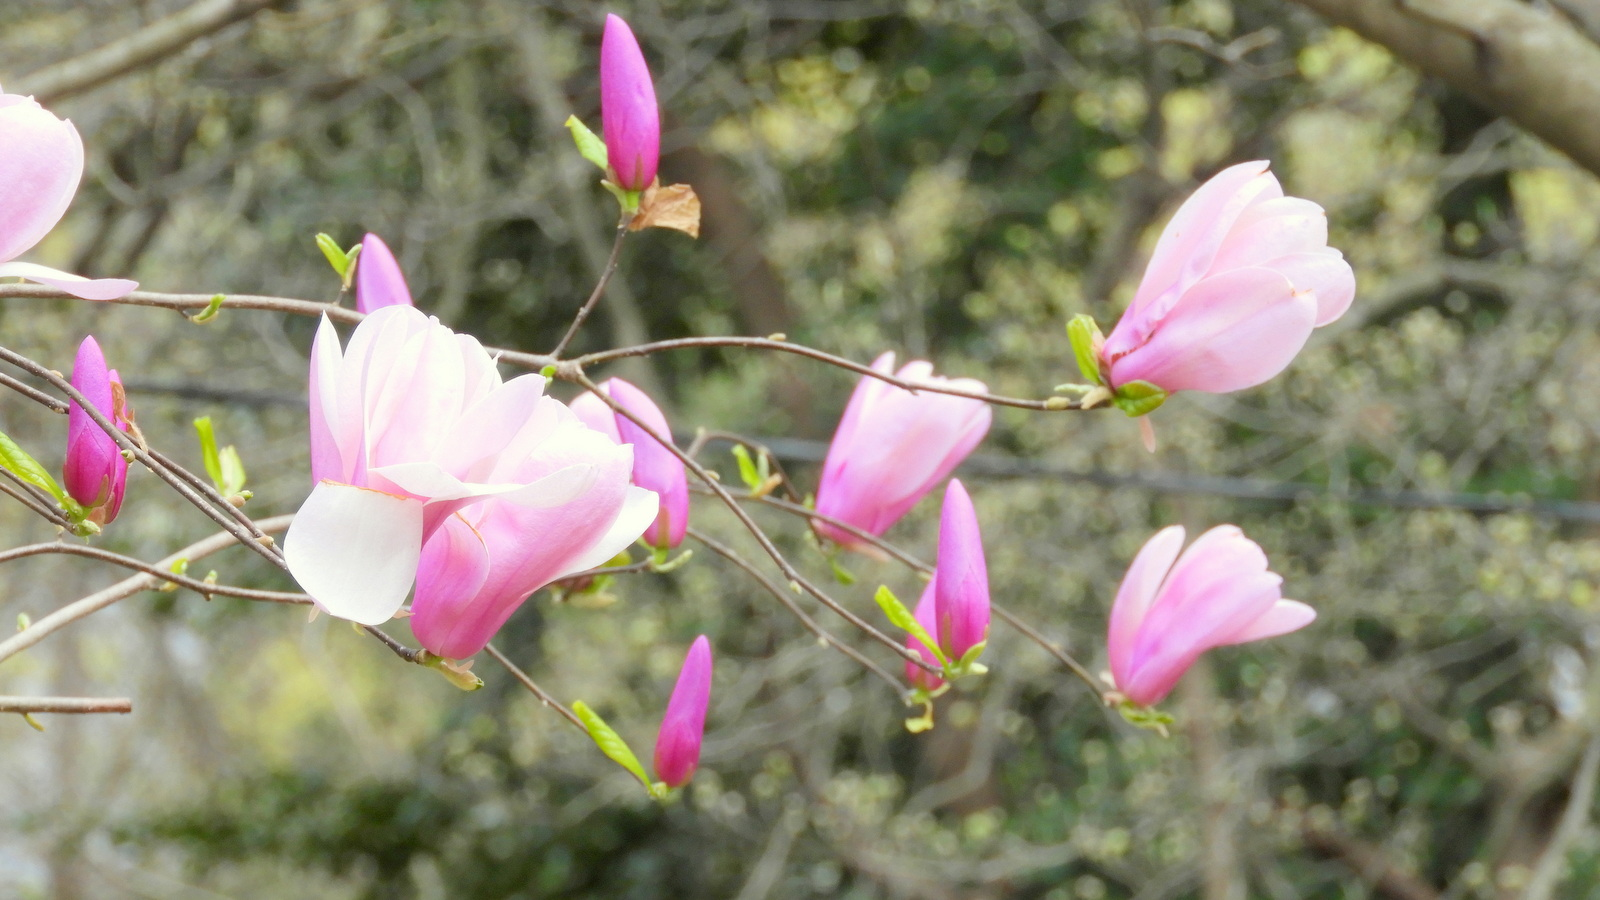 Magnolia flowers in Baltimore are lovely now - and just right for adding to a salad, urban foragers say. (Marta Hanson)